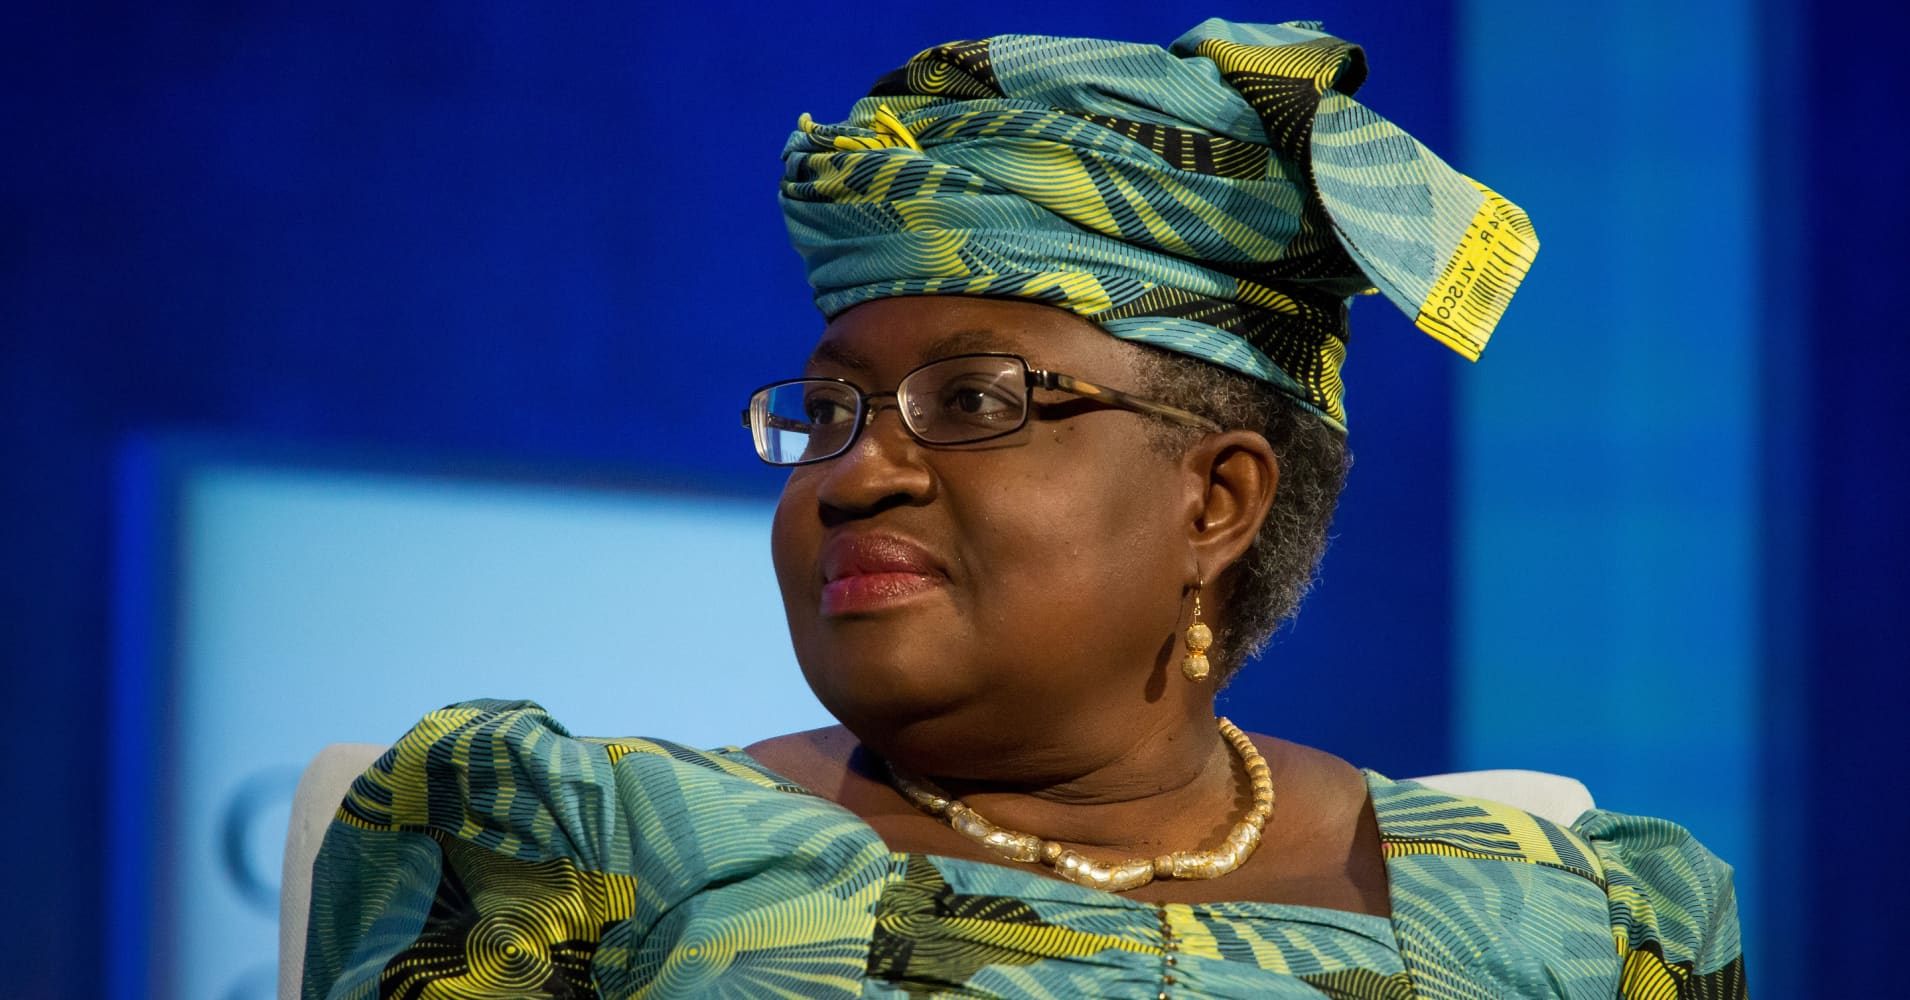 China-style state-led growth won't work in Africa, former Nigeria finance minister warns